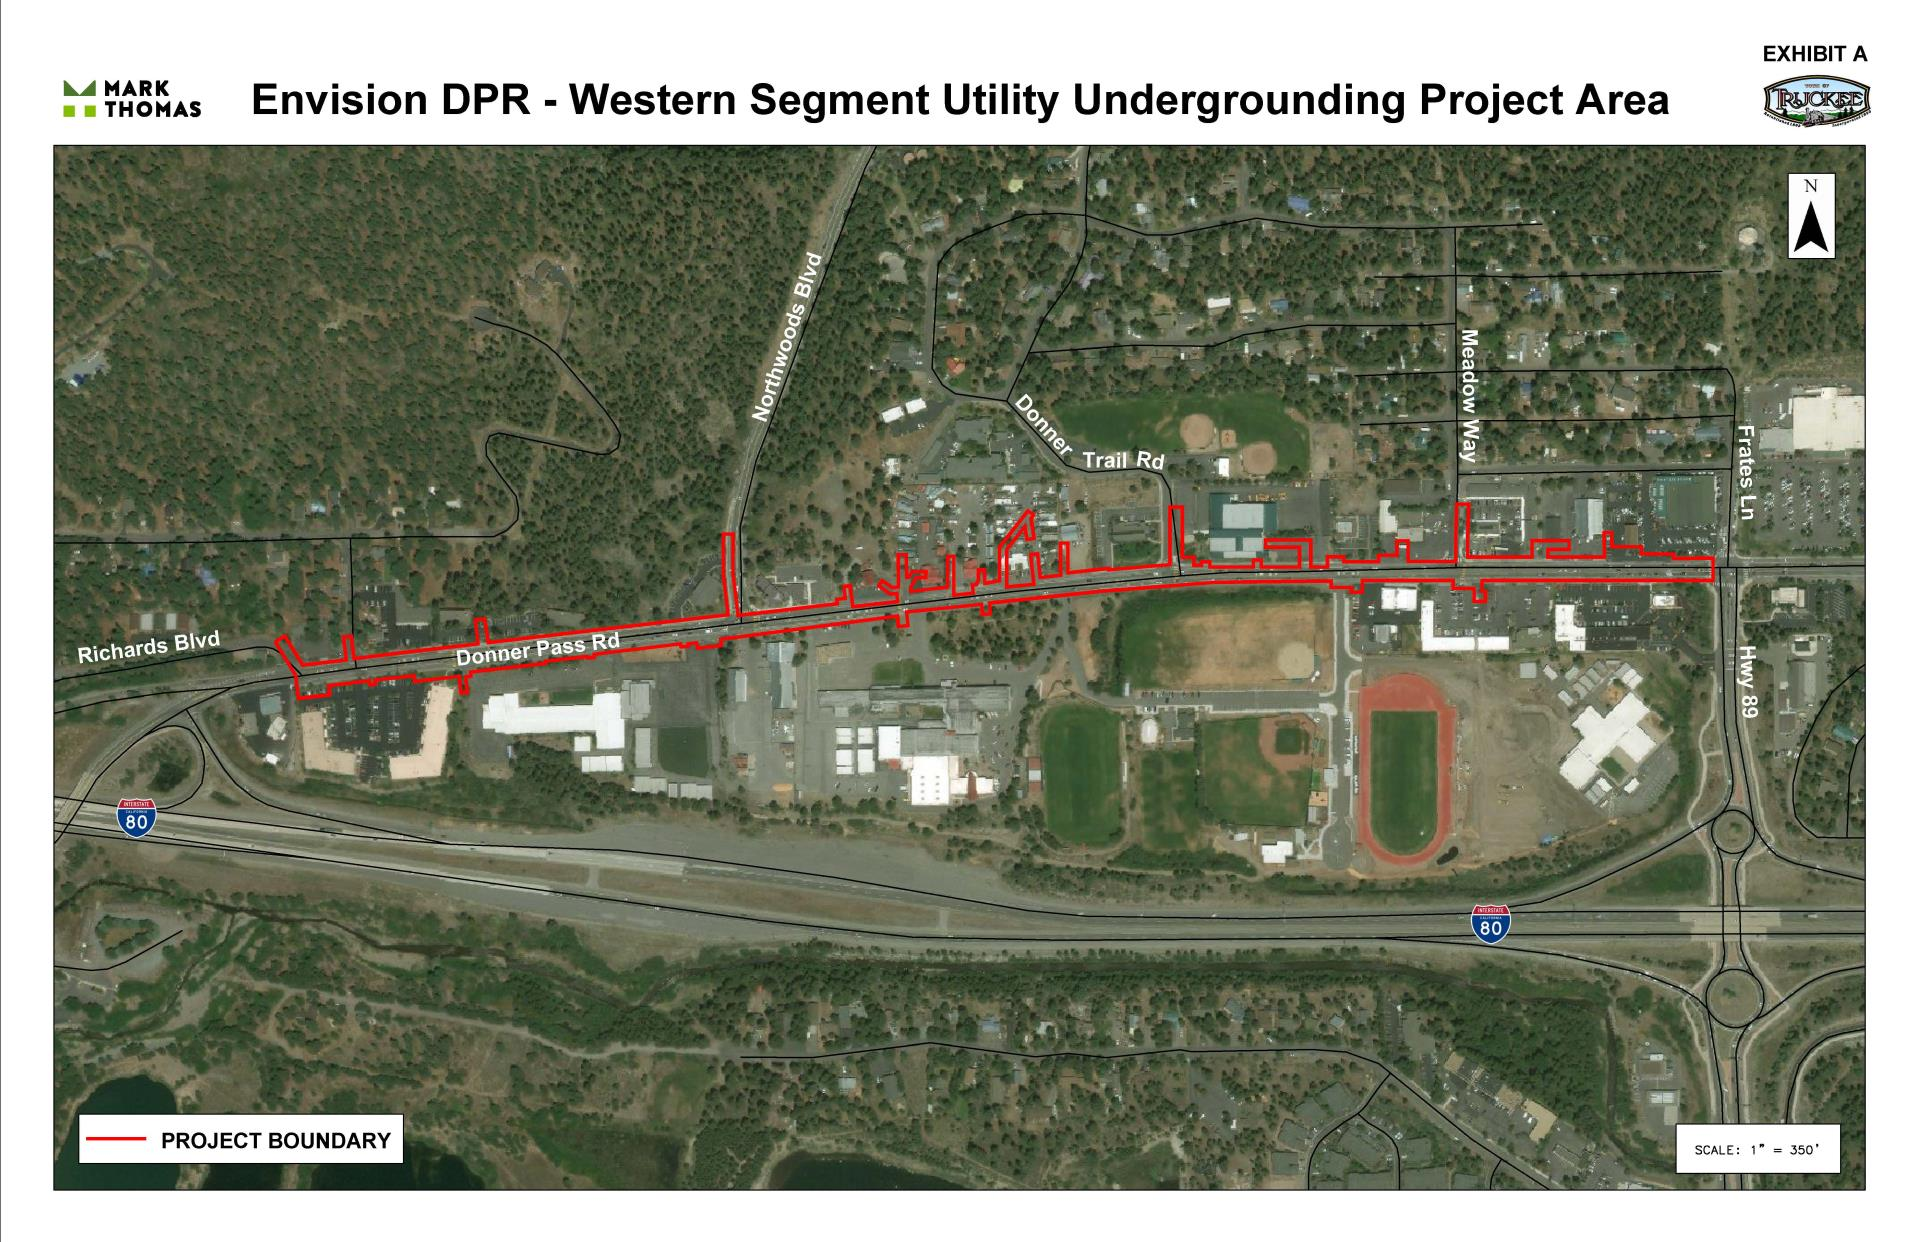 Envision DPR - Western Segment Utility Undergrounding Project Area image